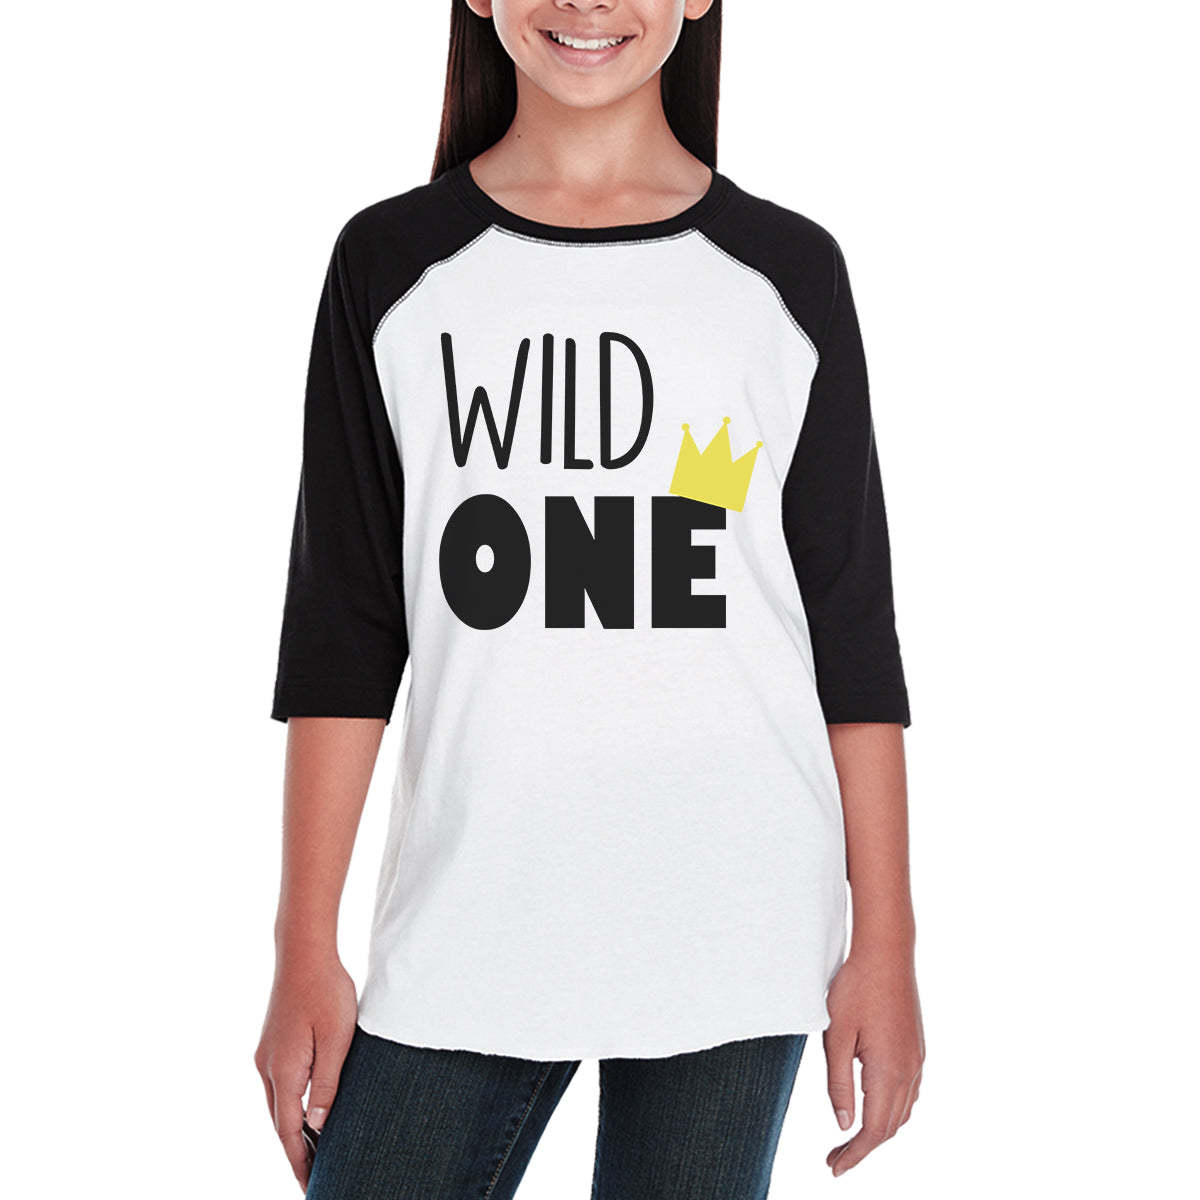 7c9af76fc Wild One Crown Kids Black And White BaseBall Shirt - 365 IN LOVE ...